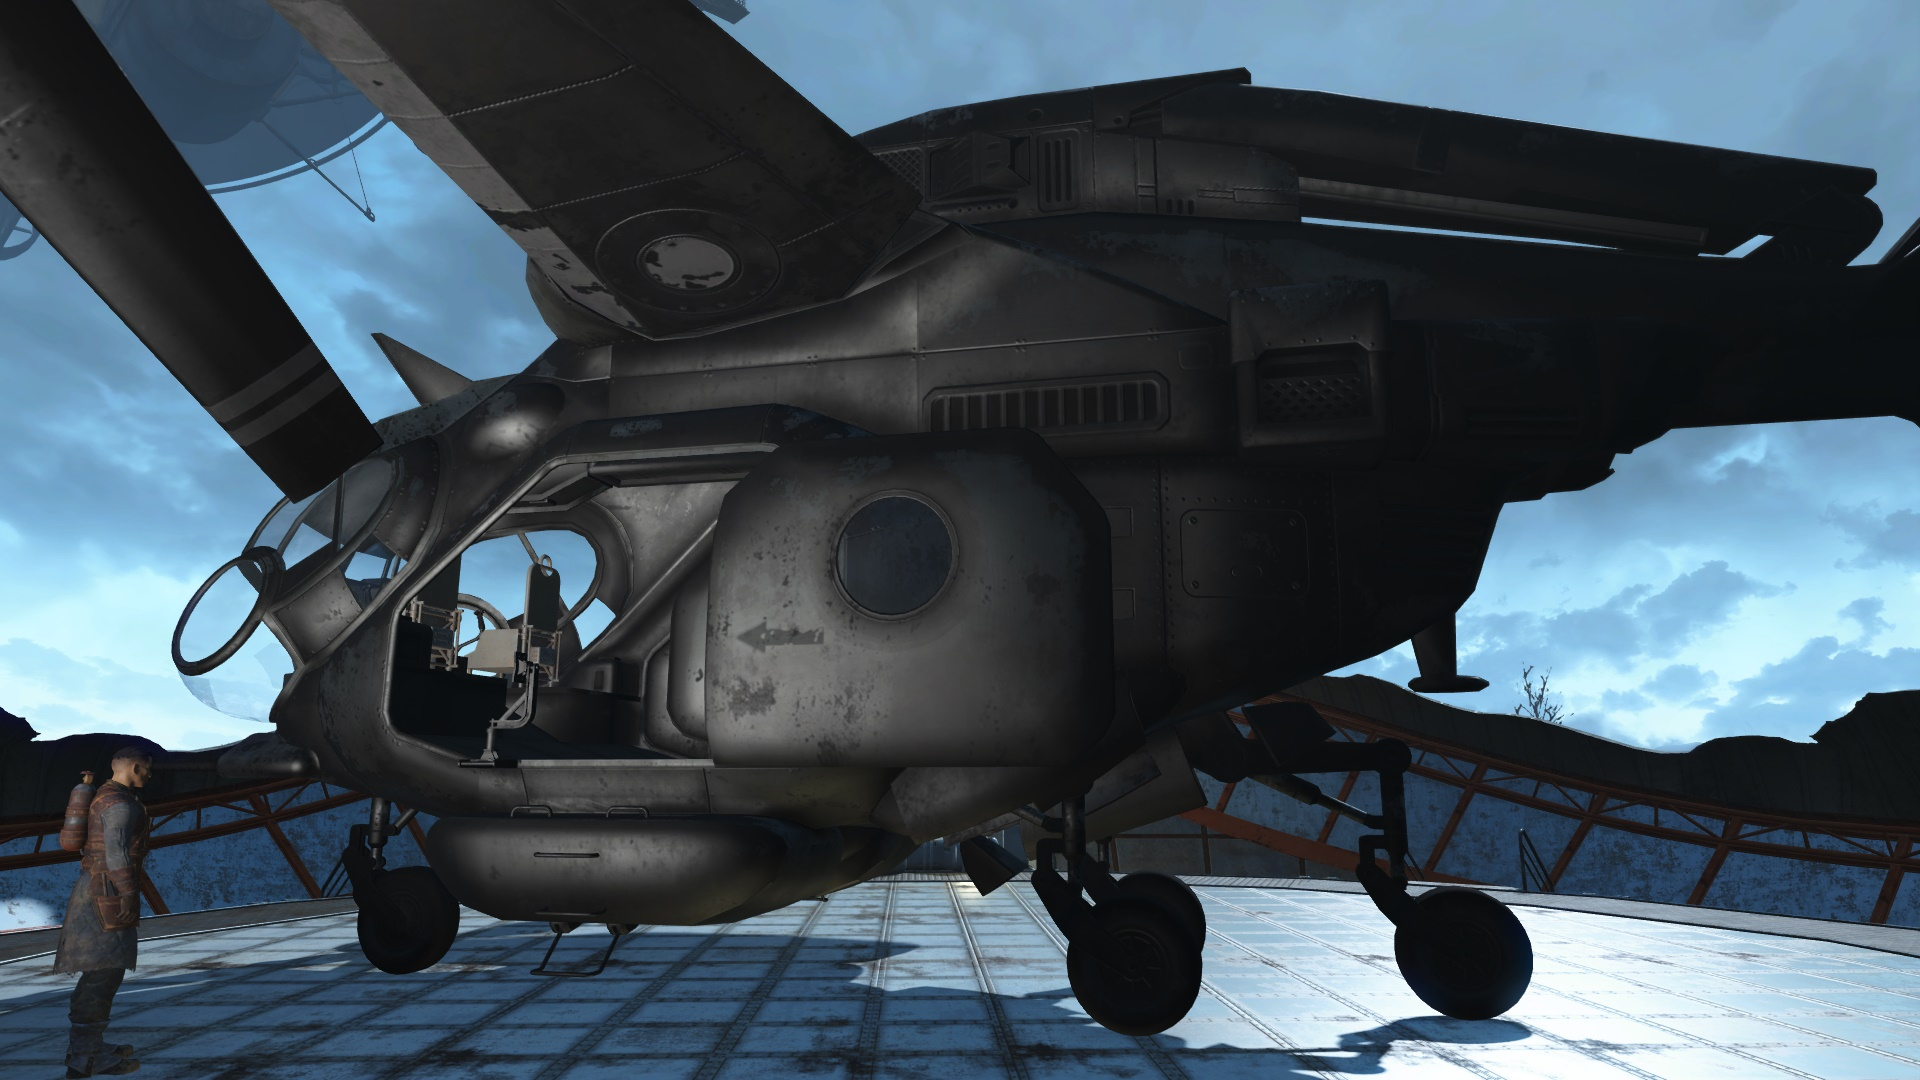 Fallout Vertibird 3d Model Related Keywords & Suggestions